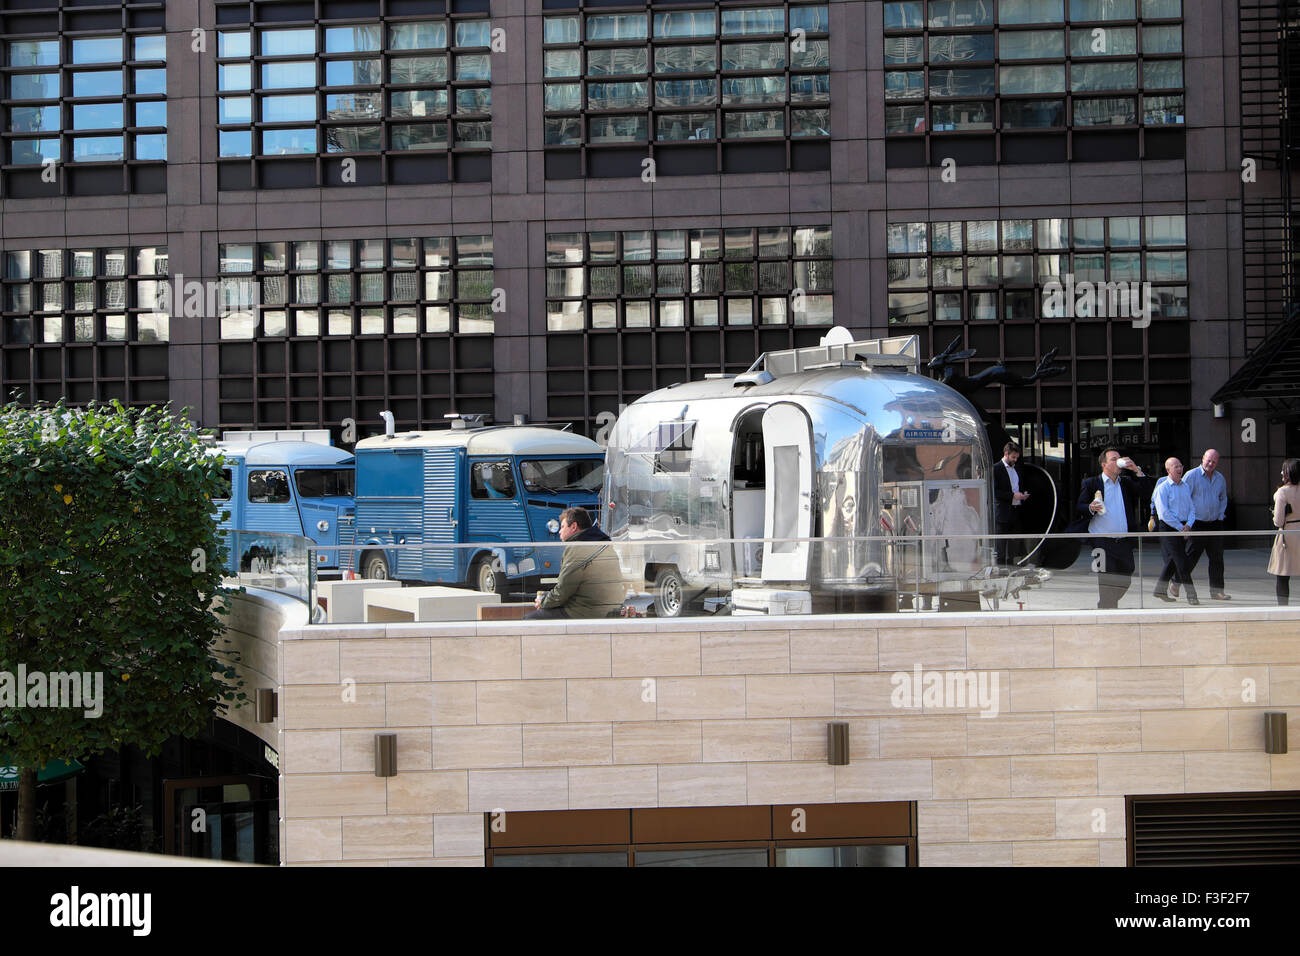 Airstream food van at lunchtime in Broadgate City of London UK  KATHY DEWITT - Stock Image